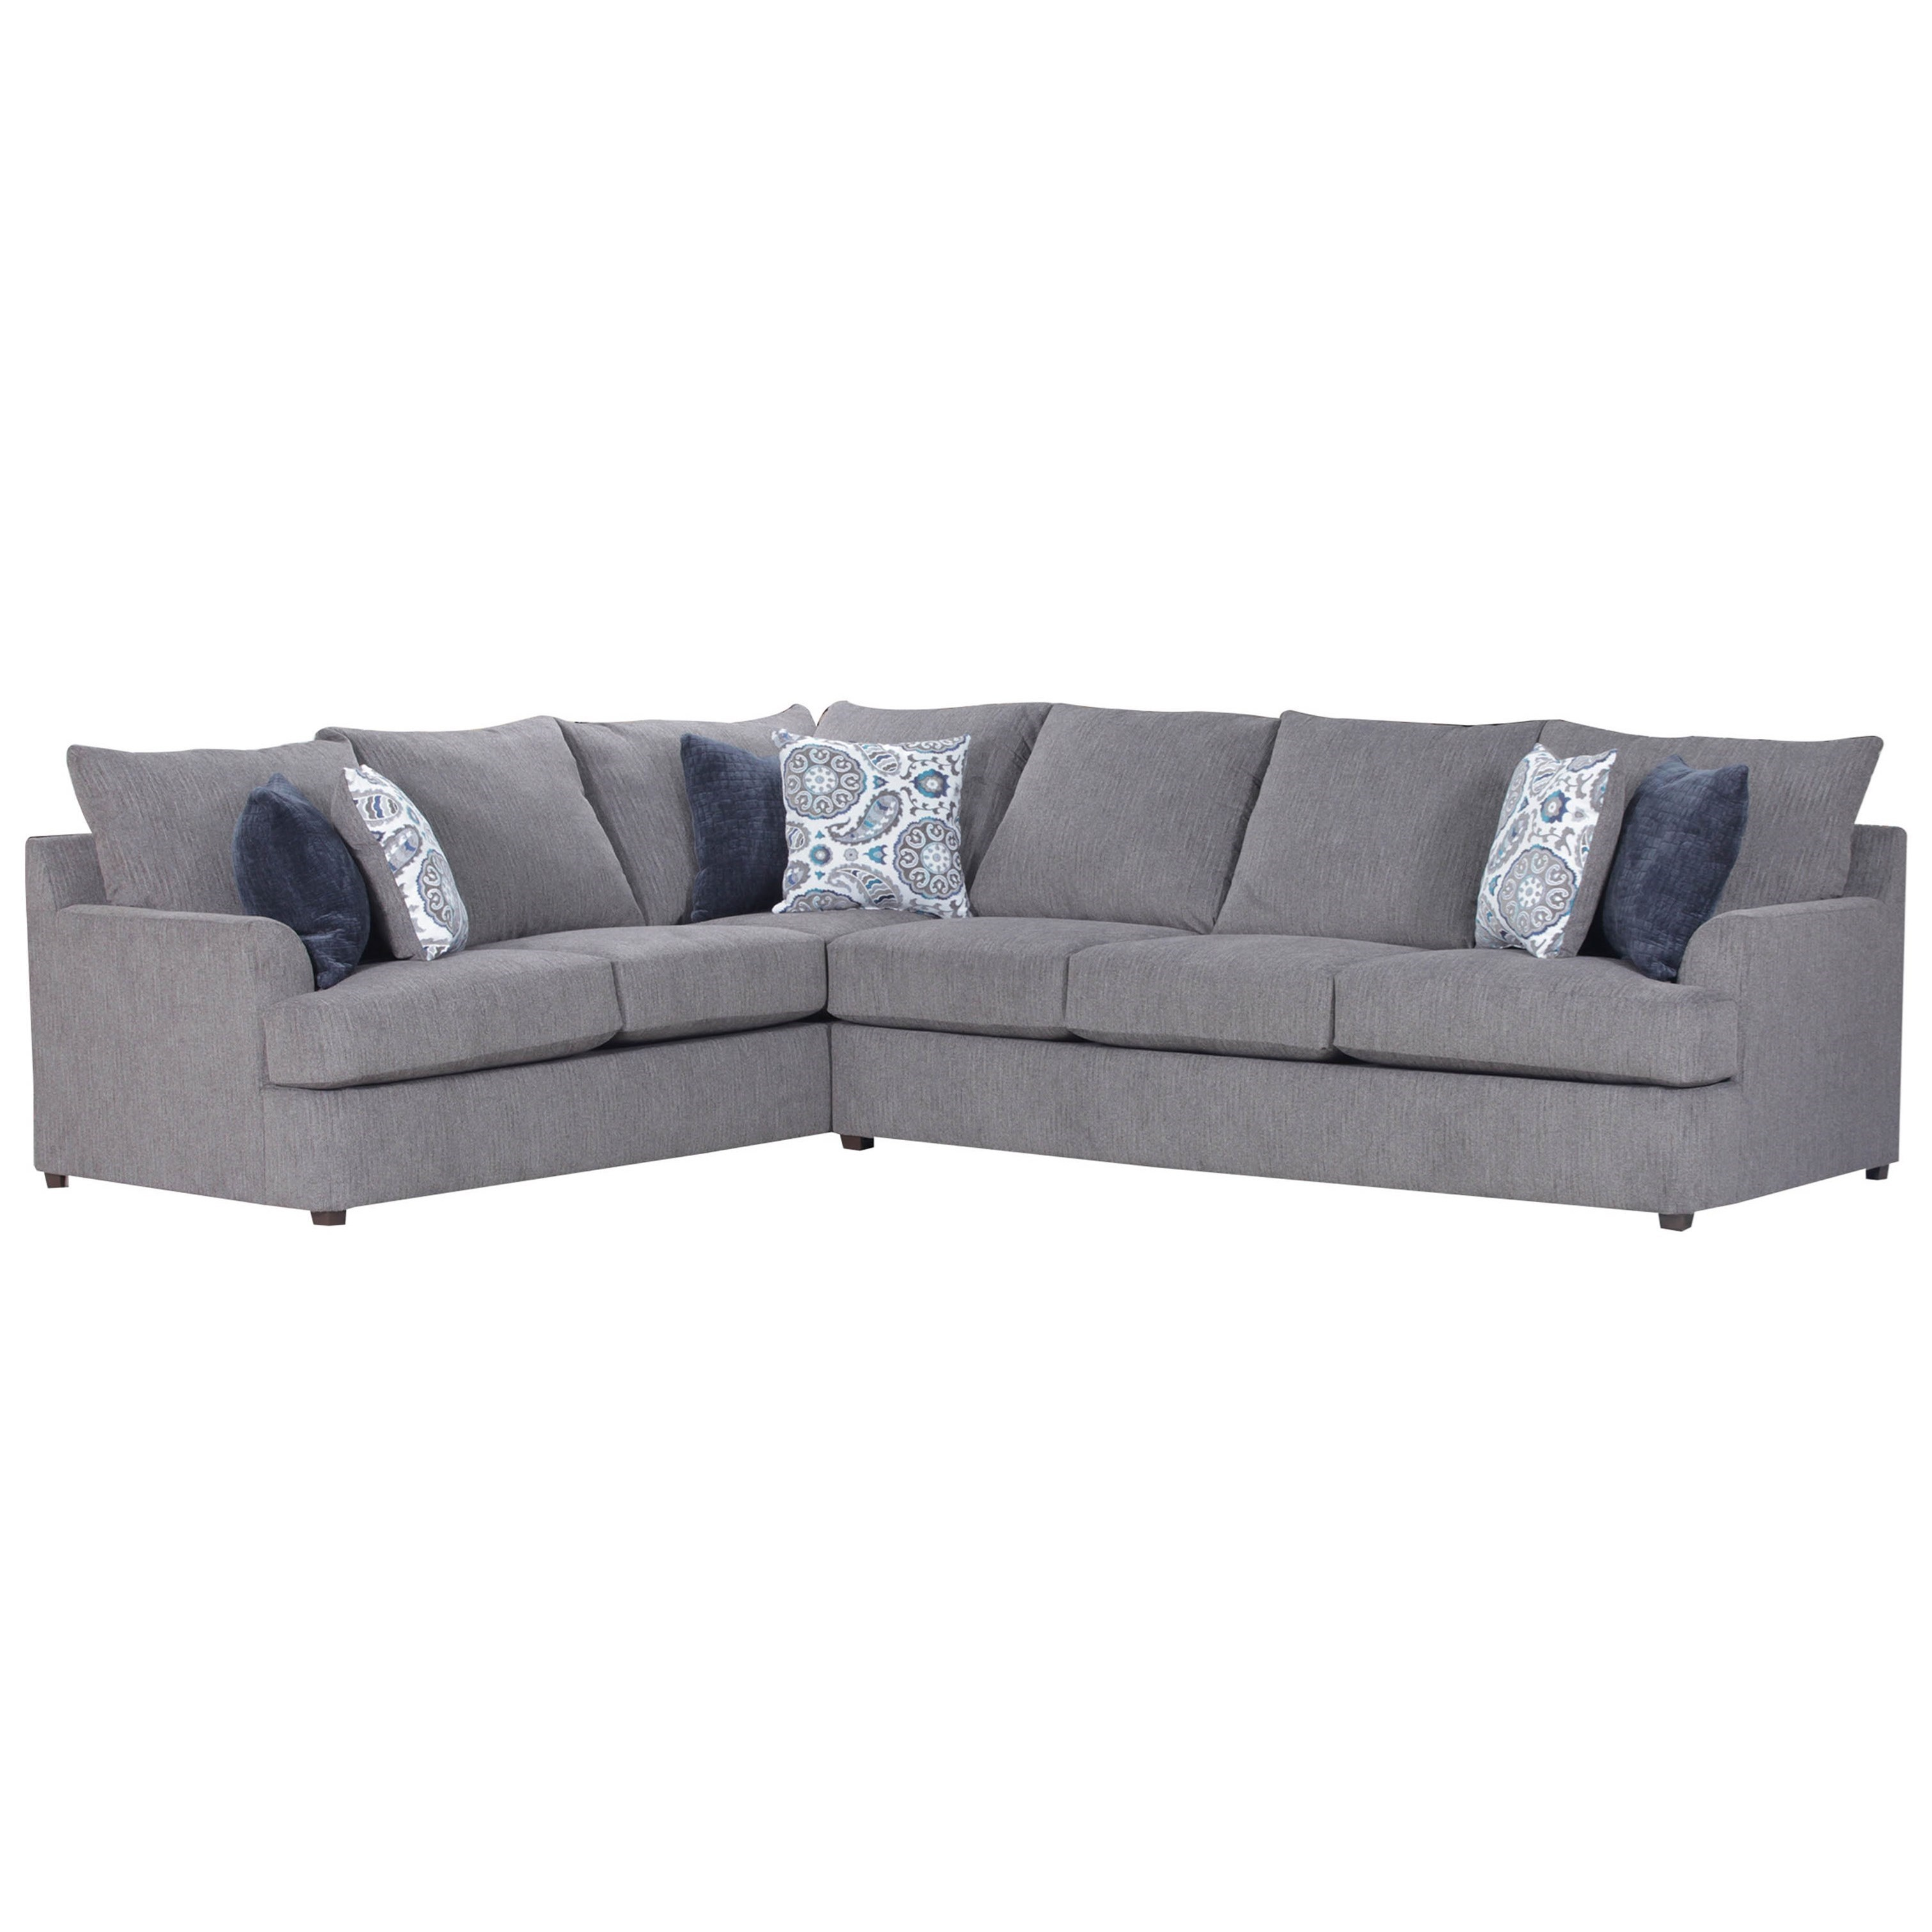 8540BR Casual Sectional Sofa by United Furniture Industries at Household Furniture